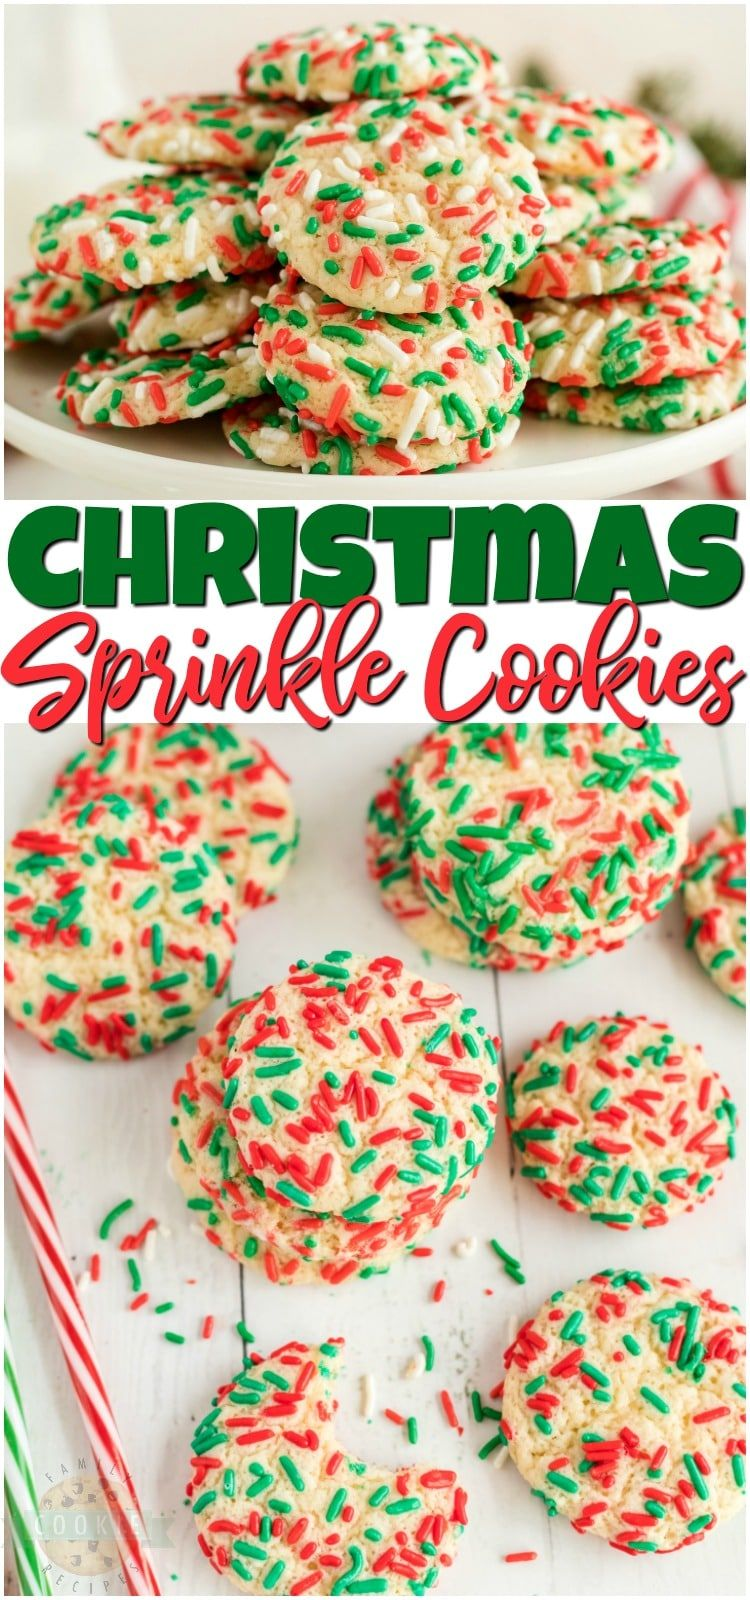 Christmas Sprinkle Cookies are sugar Cookies rolled in Christmas sprinkles for a special holiday treat! Delightfully soft & chewy Christmas cookies made with festive holiday sprinkles! #Christmas #sugarcookies #sprinkles #cookies #baking #holidays #neighborgifts #ChristmasCookies from FAMILY COOKIE RECIPES #holidaytreats